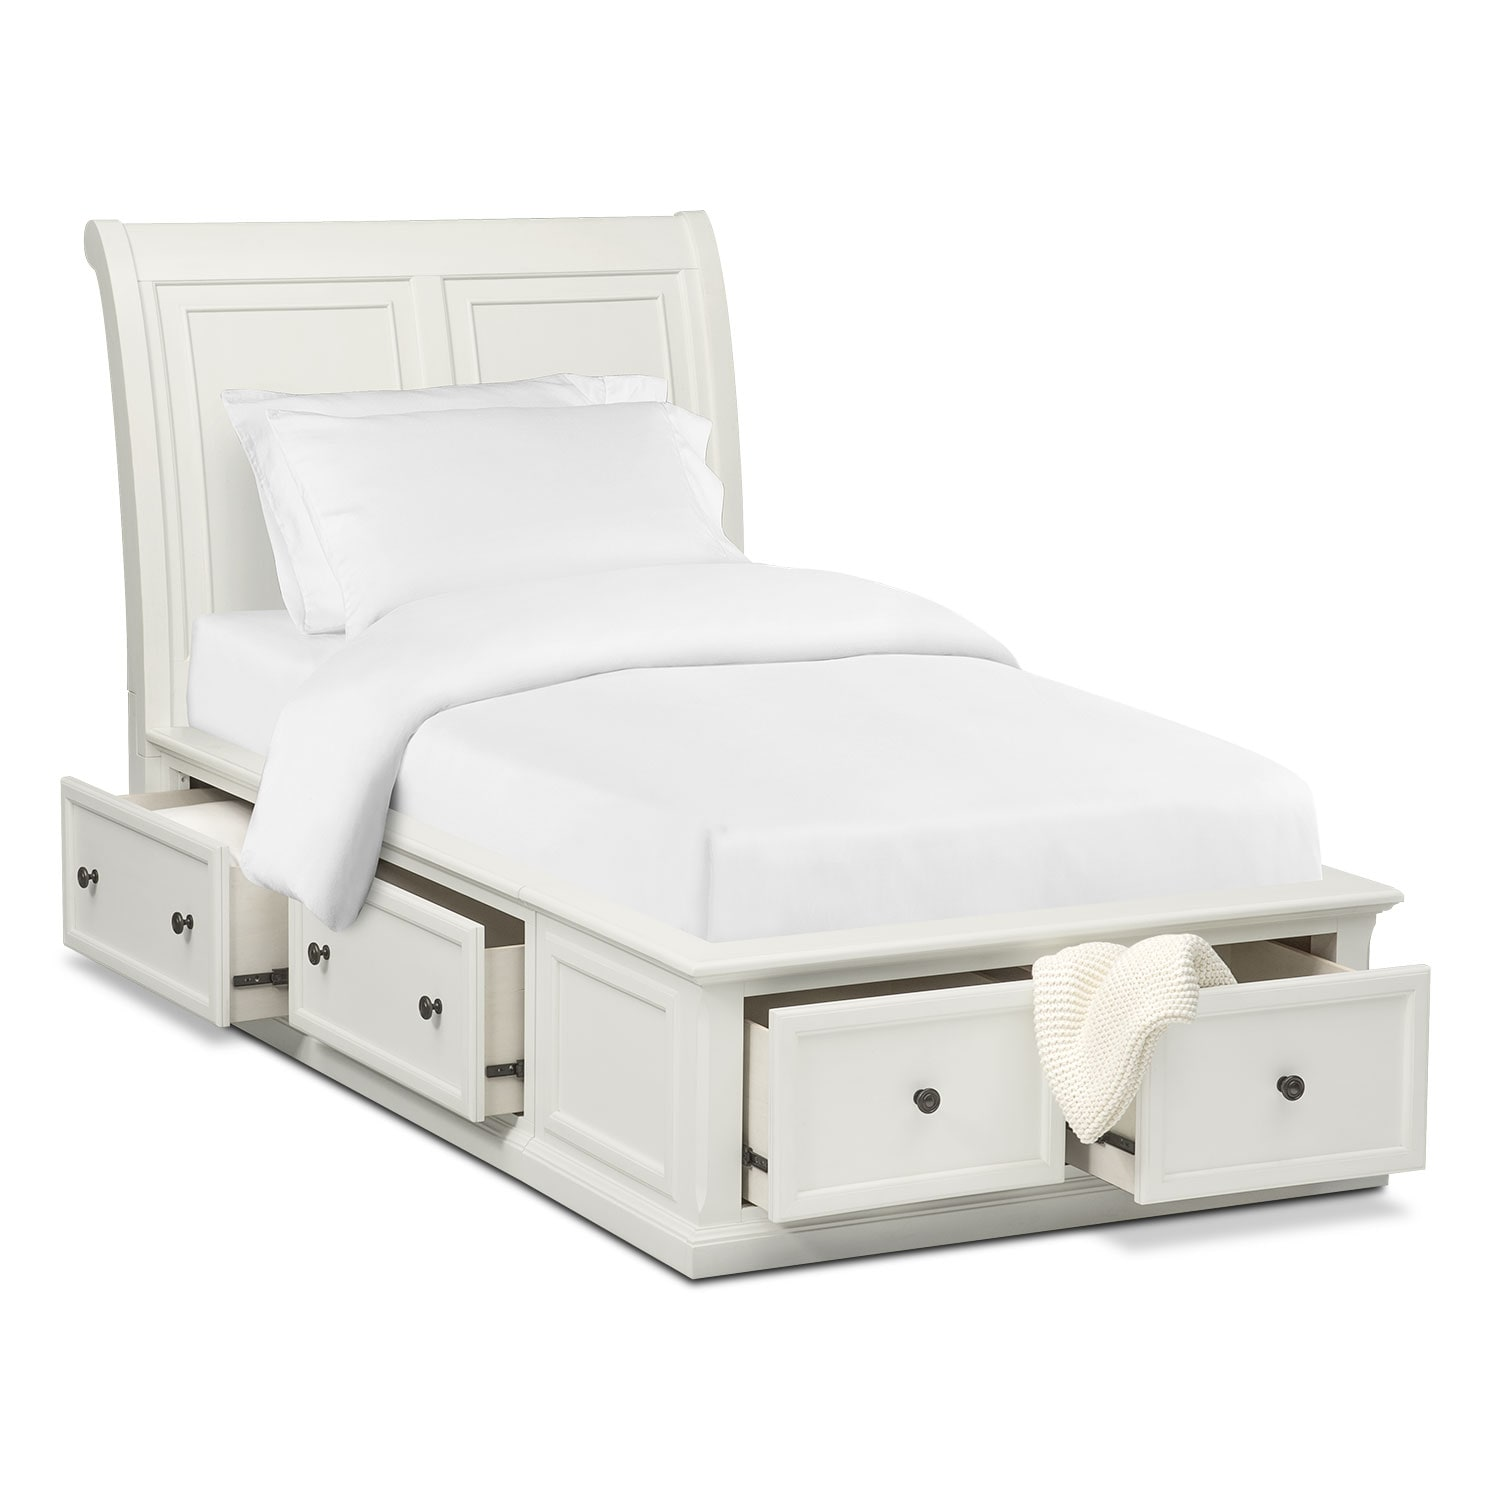 Hanover Youth Full Sleigh Bed with Storage - White